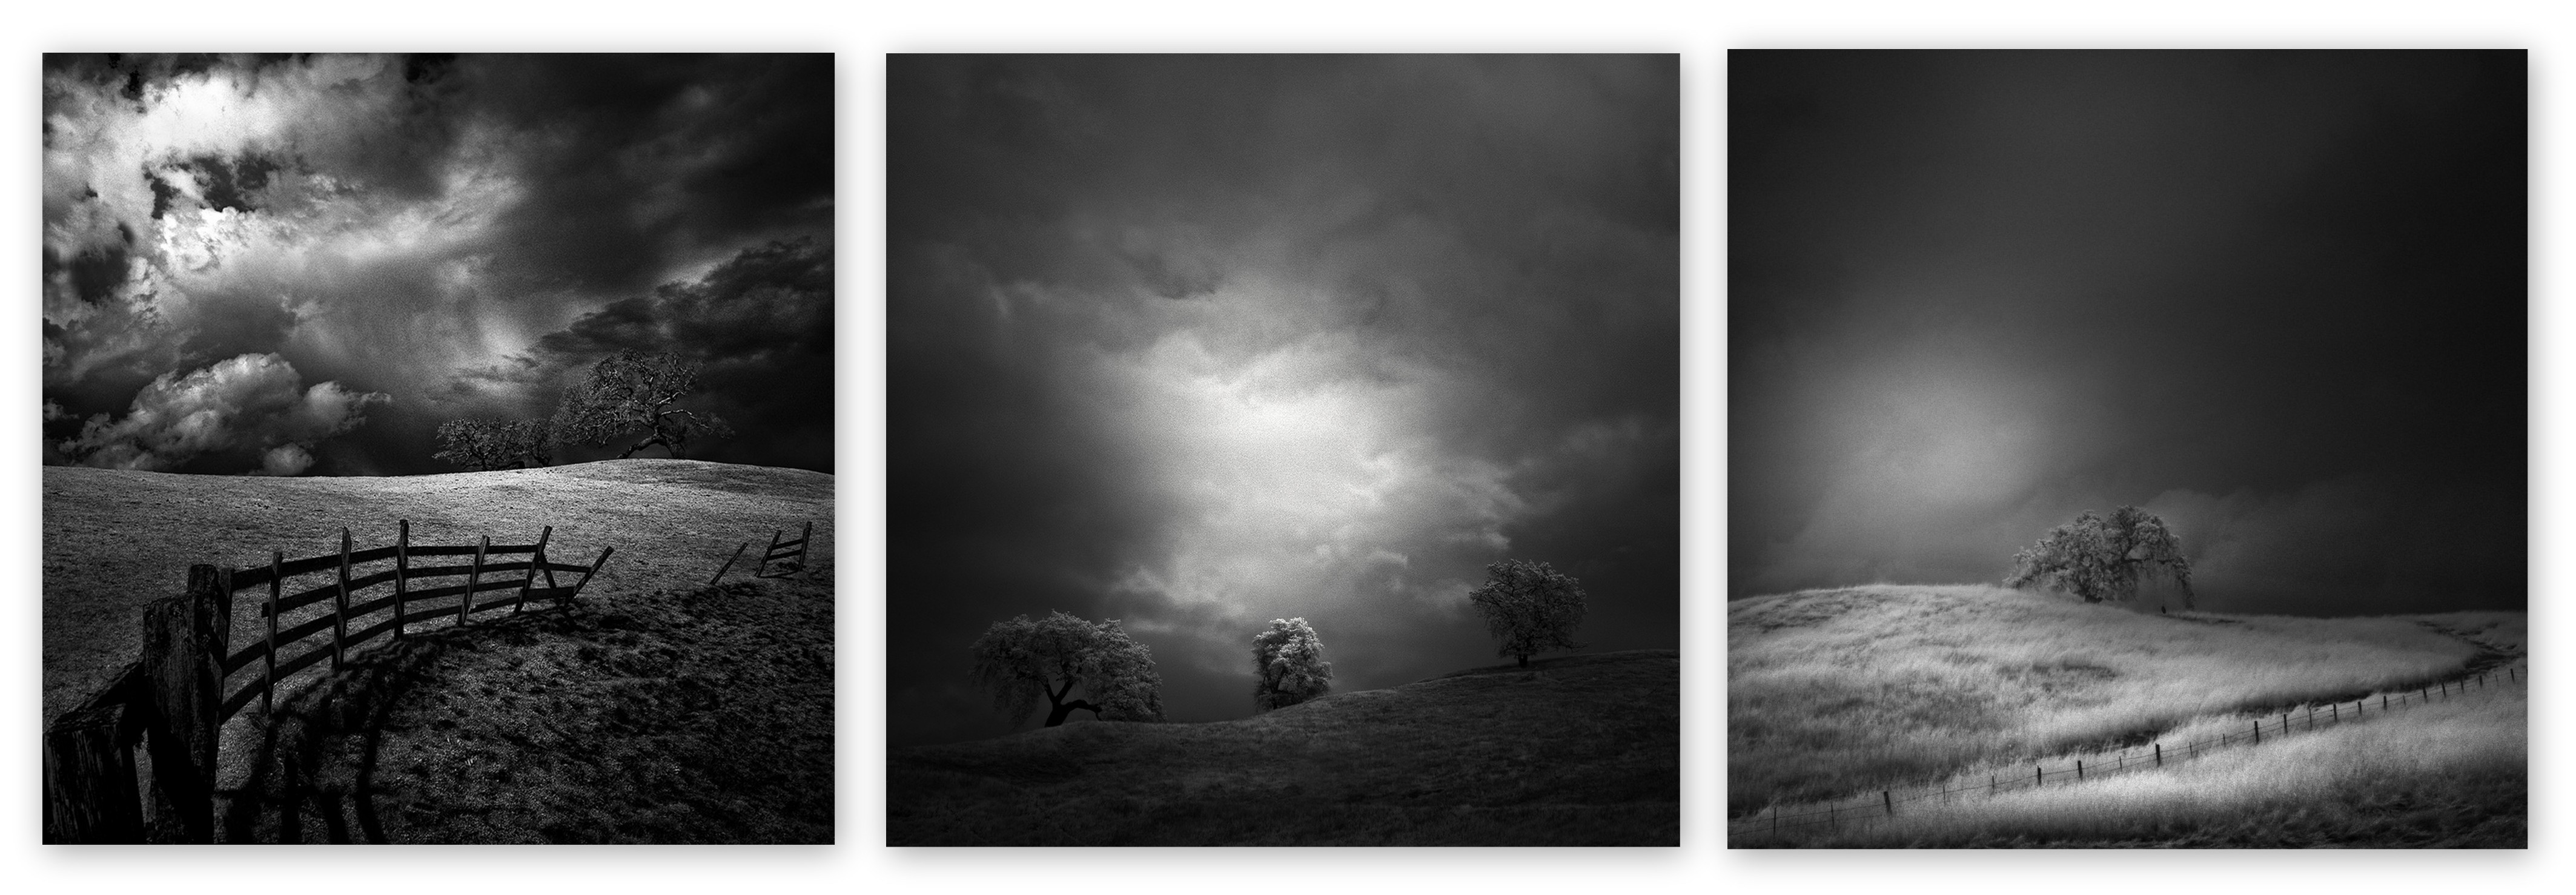 Nathan Wirth - Collage II